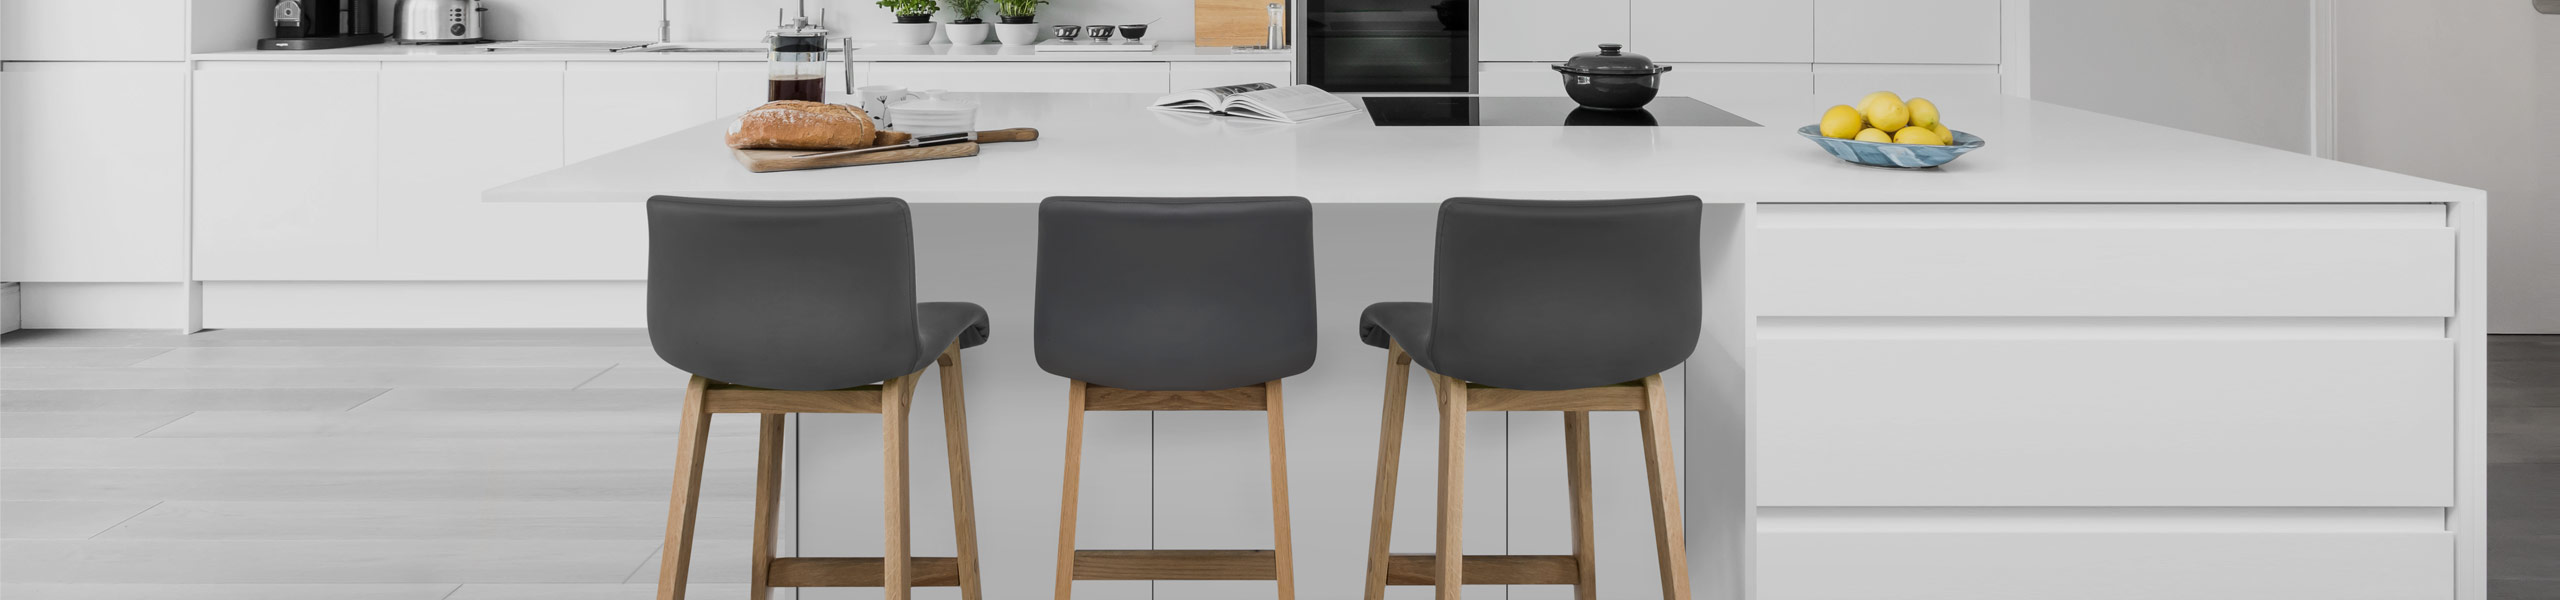 Wave Bar Stool Grey Video Banner